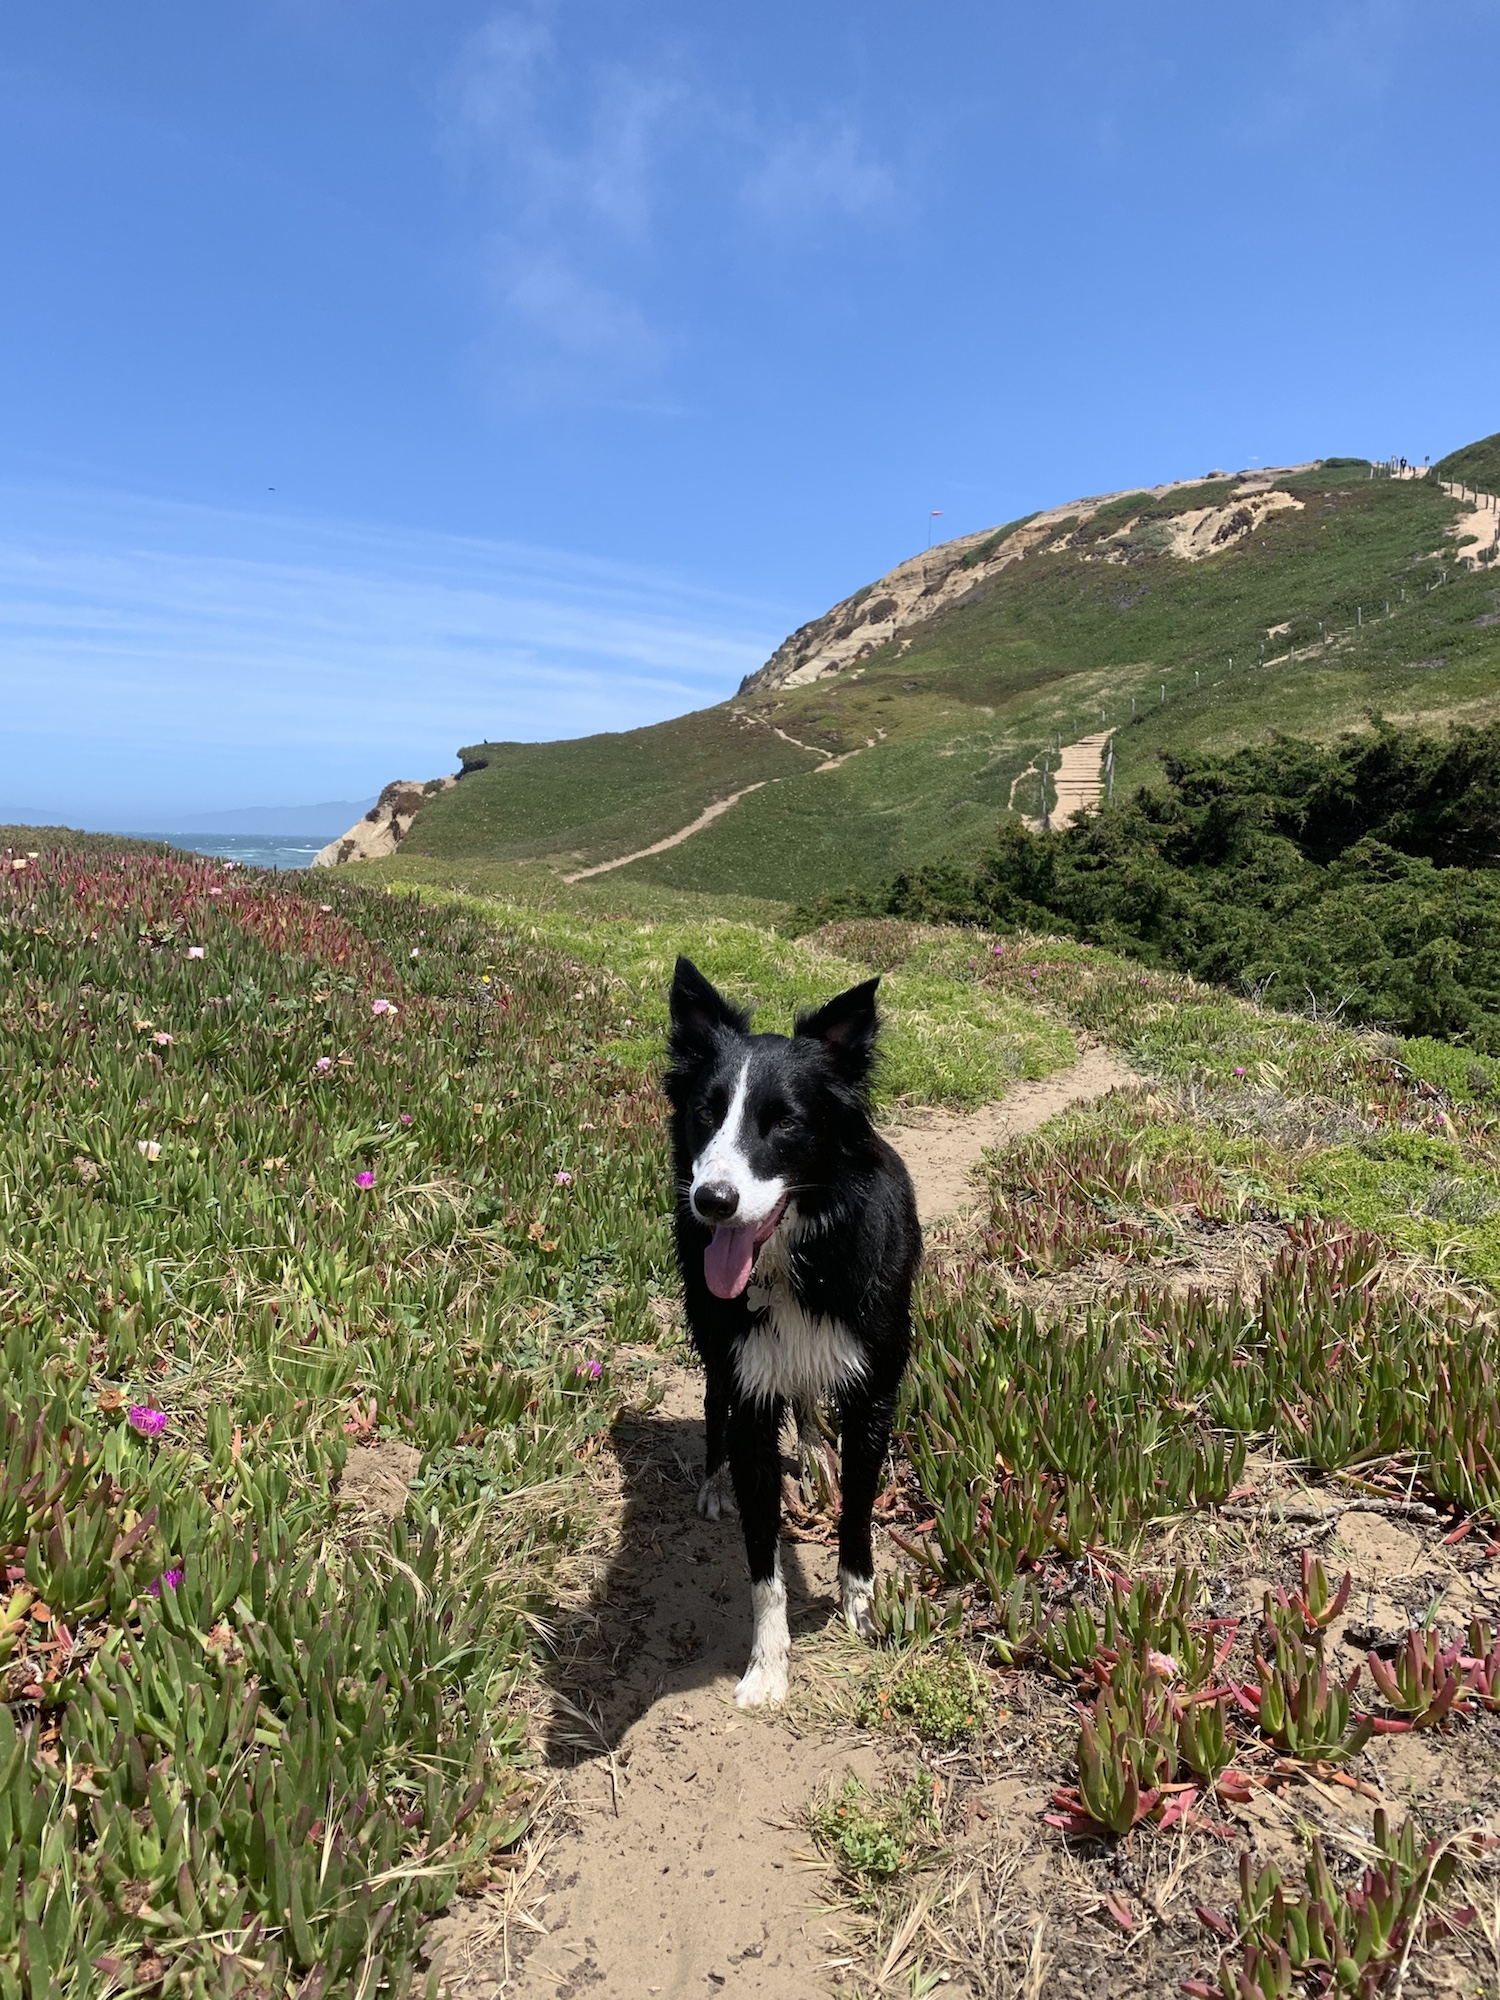 A border collie on a trail in Fort Funston, an off leash dog park in San Francisco.